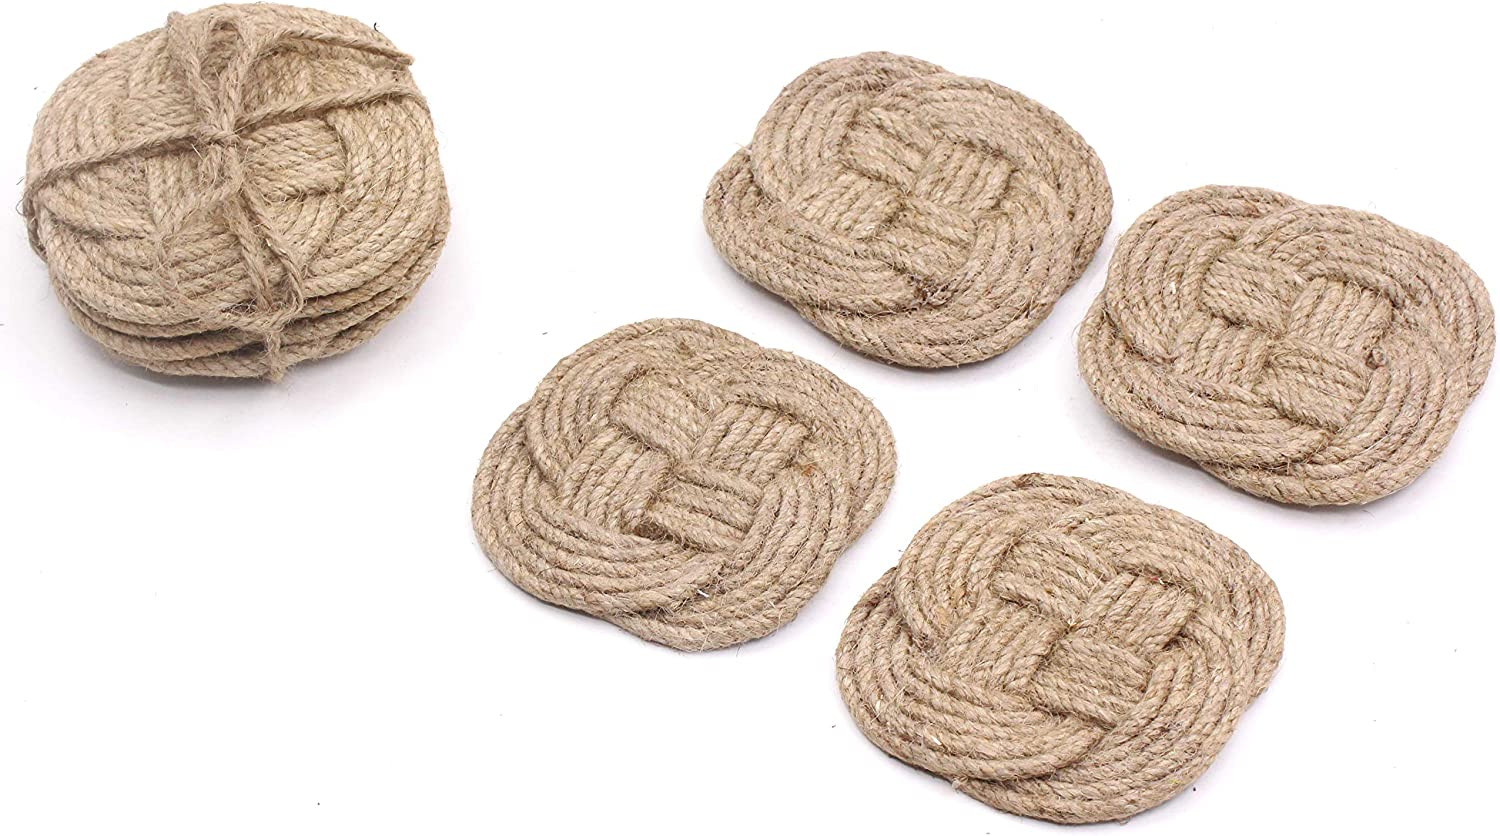 Roorkee Instruments India Four Jute Rope Coaster Set-Nautical Gift-Beach Decor